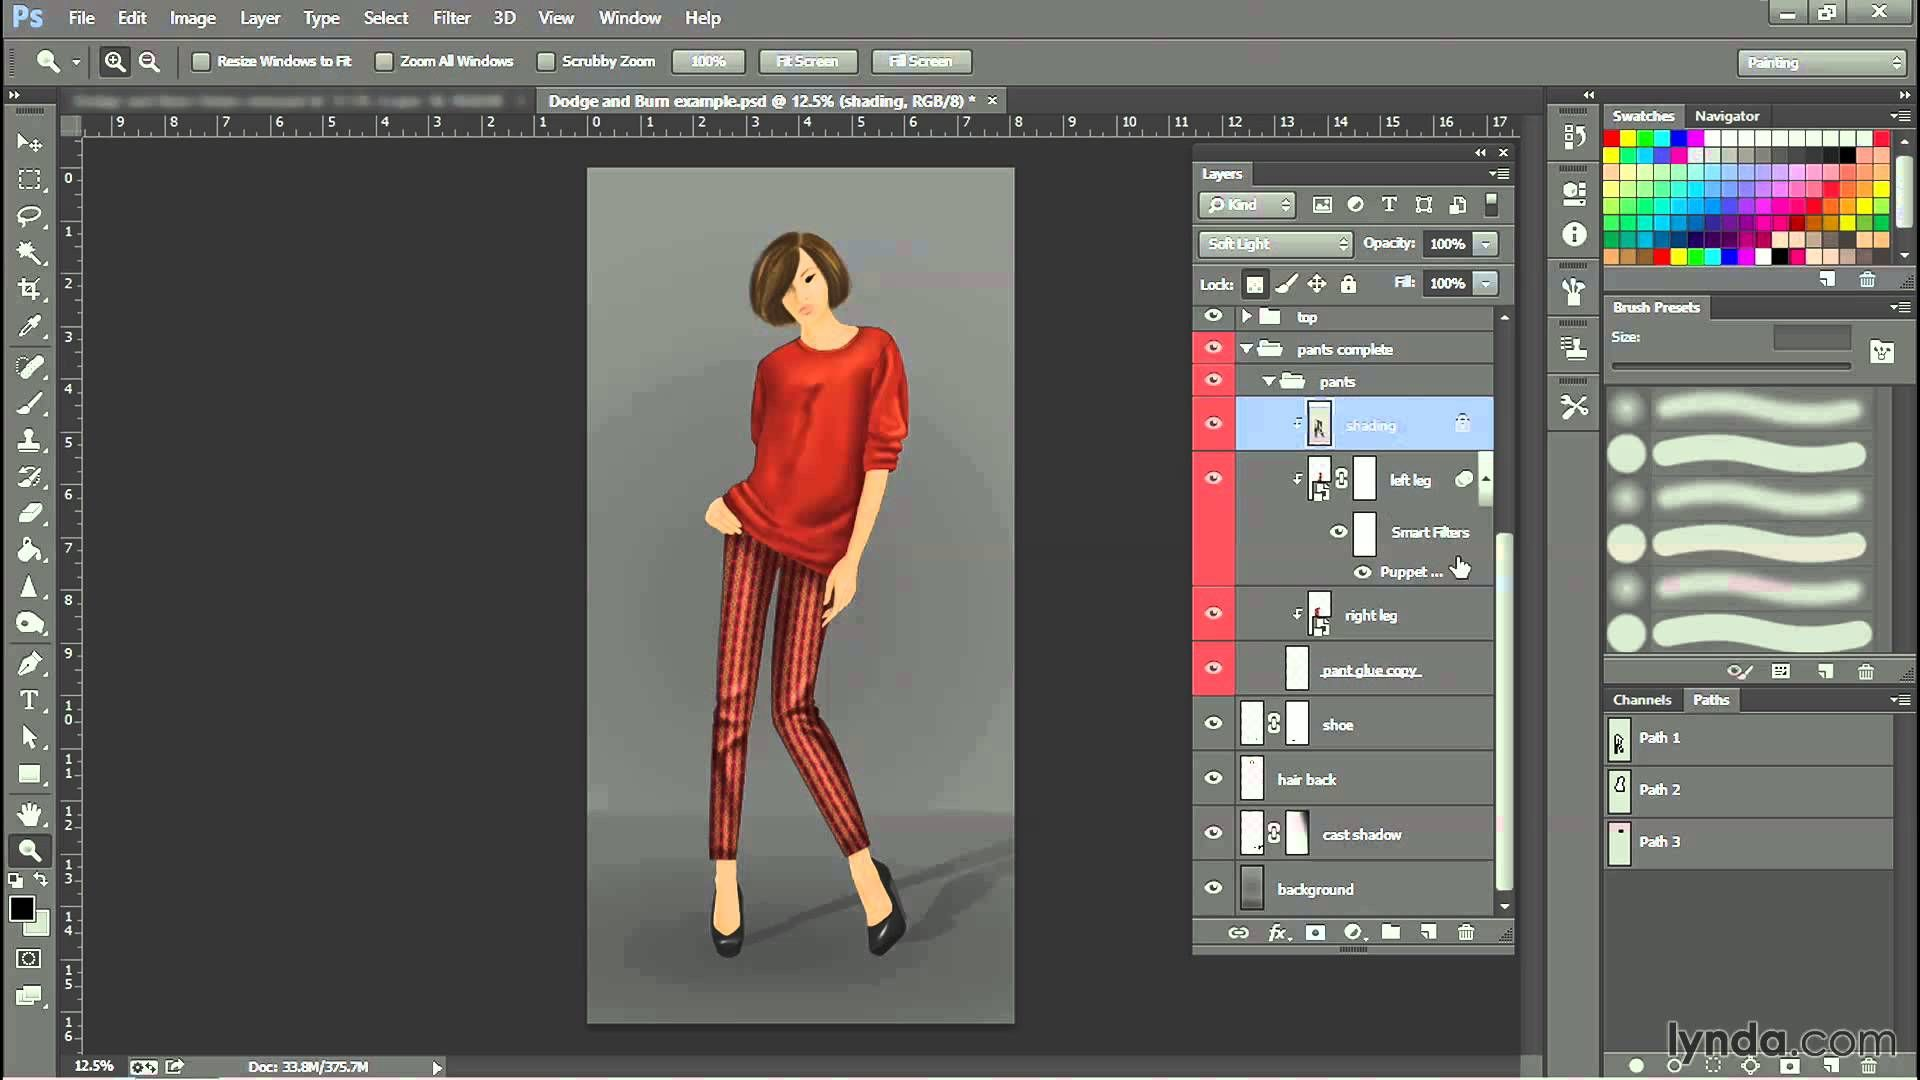 Photoshop fashion design tutorial swapping patterns lynda photoshop fashion design tutorial swapping patterns lynda baditri Images